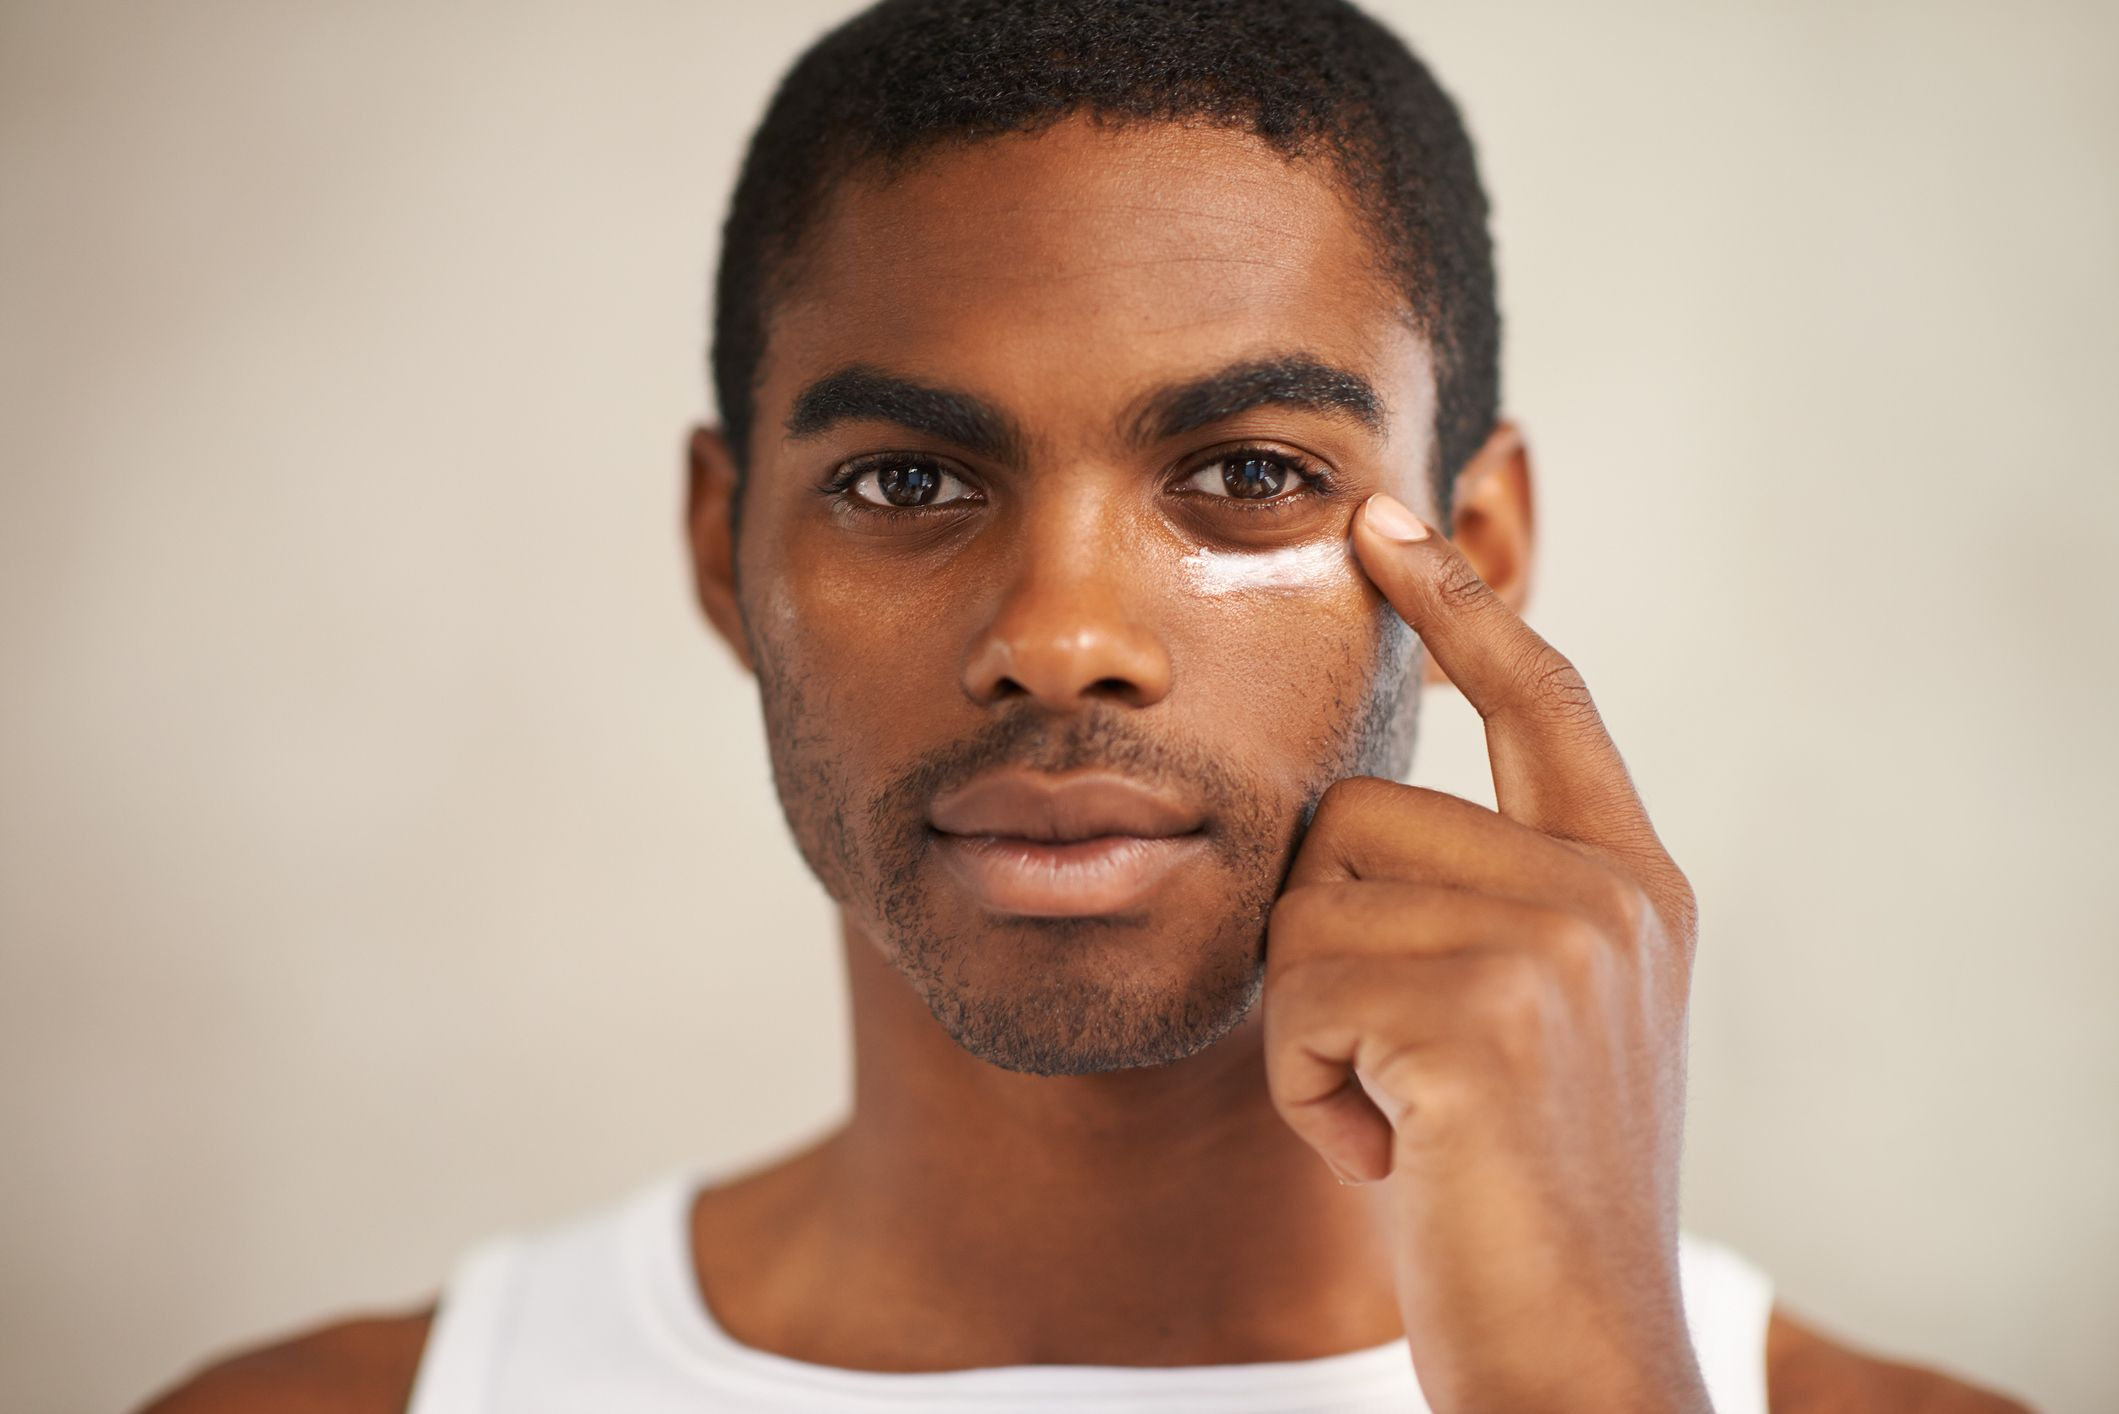 The 15 Best Eye Creams for Men, According to Your Age